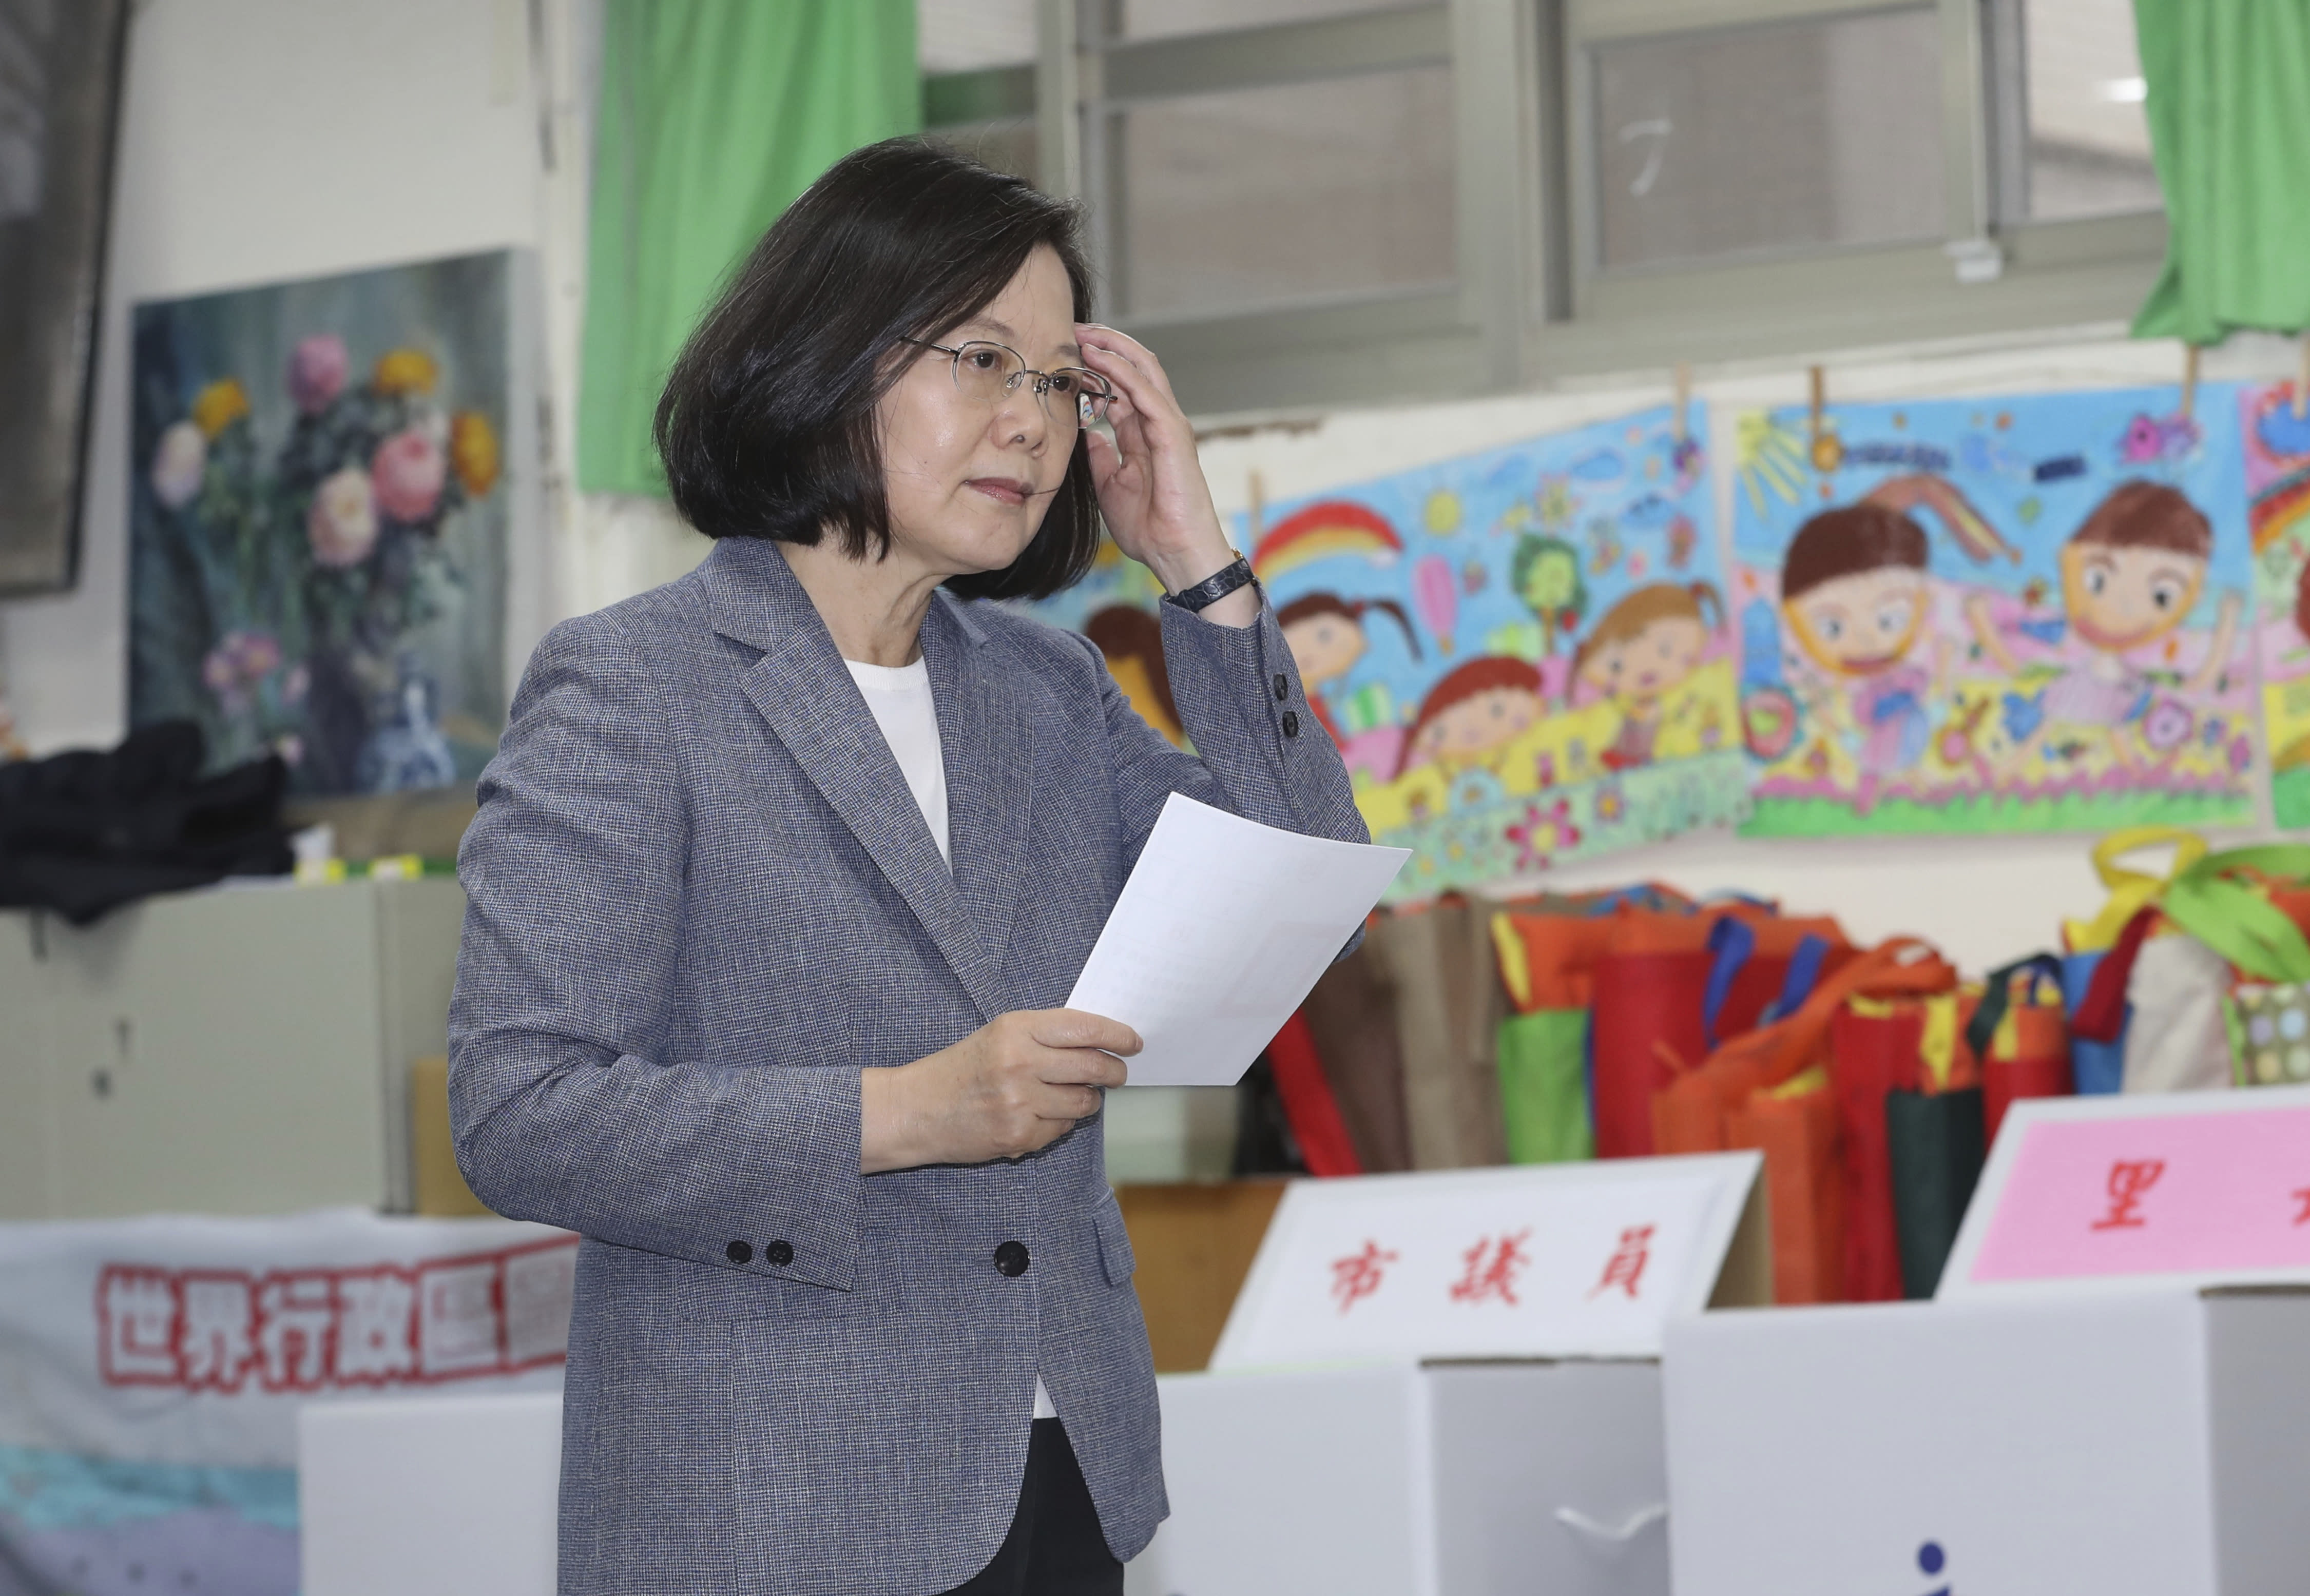 Taiwanese President Tsai Ing-wen waits to cast her ballot at a polling station, Saturday, Nov. 24, 2018, in Taipei, Taiwan. Taiwanese began voting in midterm local elections Saturday seen as a referendum on the independence-leaning administration of President Tsai, amid growing pressure from the island's powerful rival China. (Chang Haoan/ Pool Photo via AP)